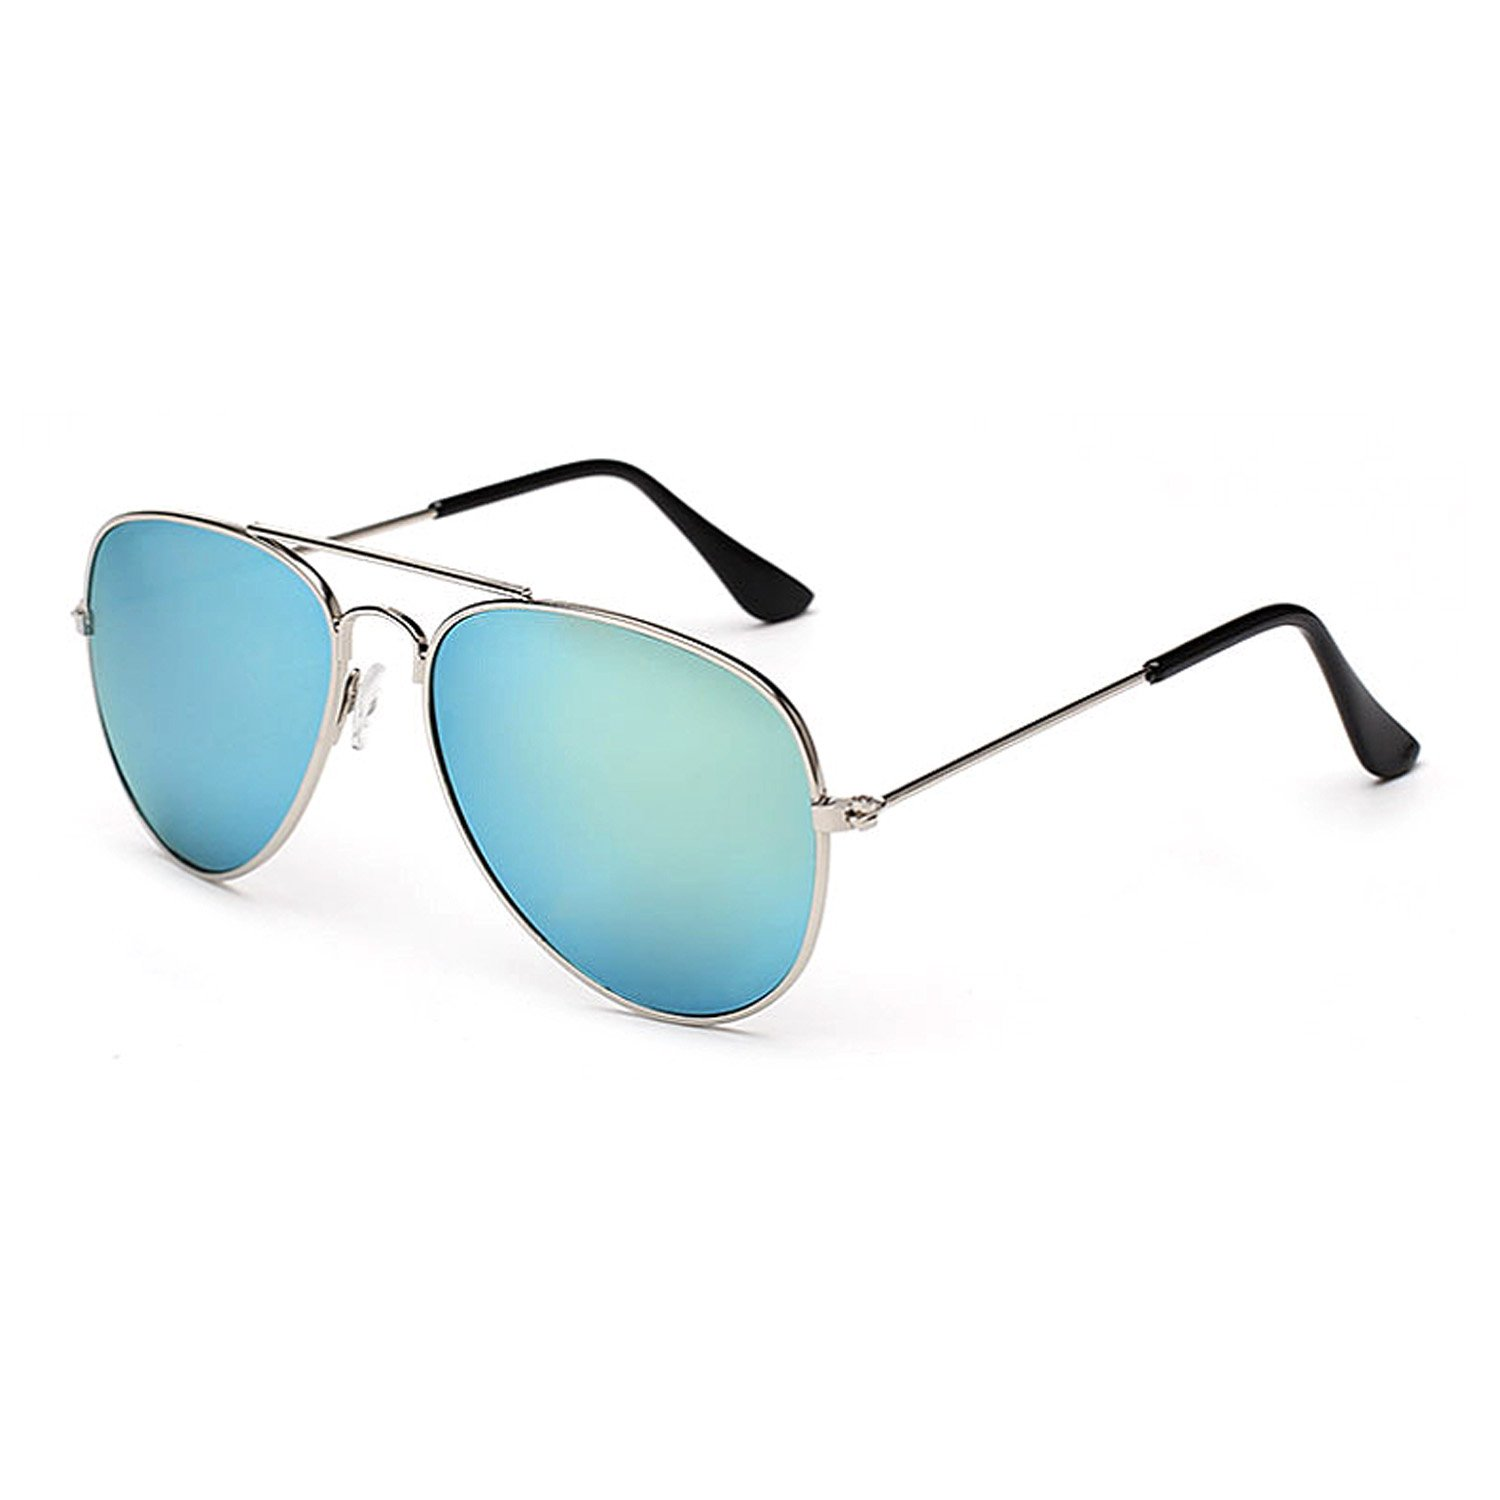 Pilot Style 100/% UV Protection XINMADE Kids Aviator Sunglasses For Boys And Girls Age 3-10